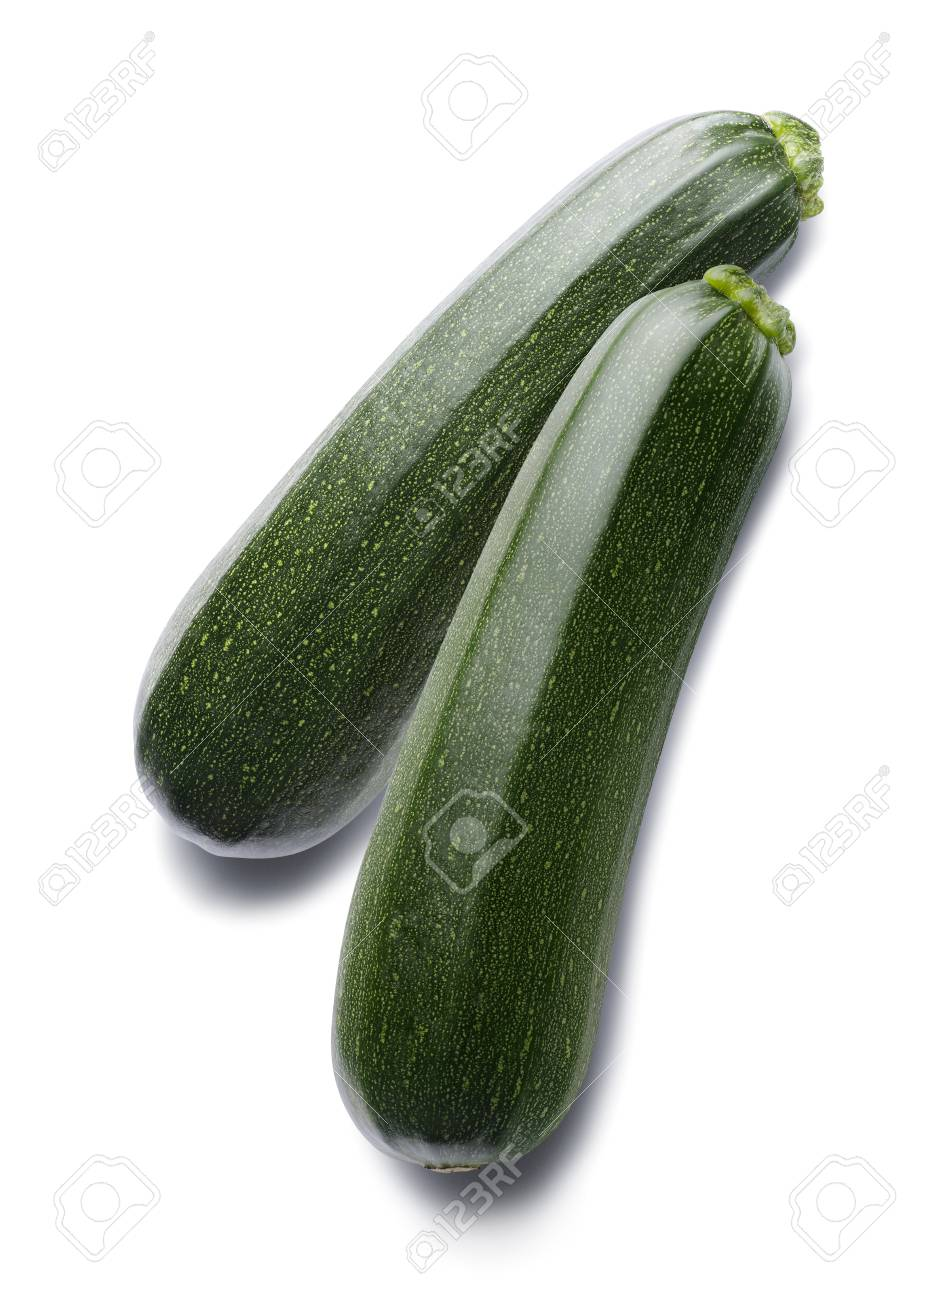 Zucchini vertical isolated on white background as package design element - 74627002